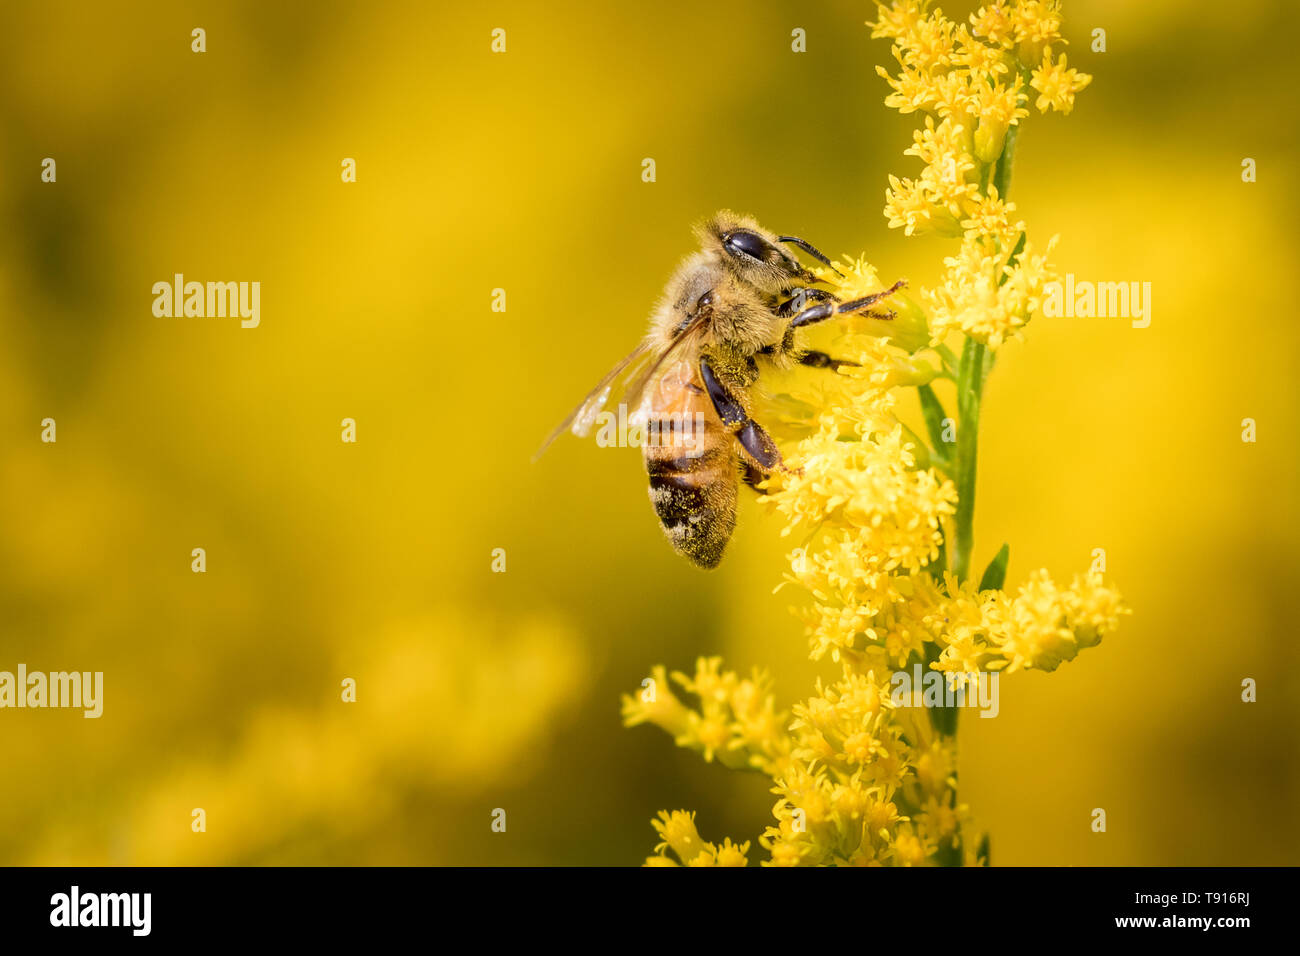 Western Honey Bee or European Honey Bee (Apis mellifera) on Goldenrod, Toronto, Ontario Canada - Honey Bees are important pollinators and honey makers but were introduced to North America - Stock Image